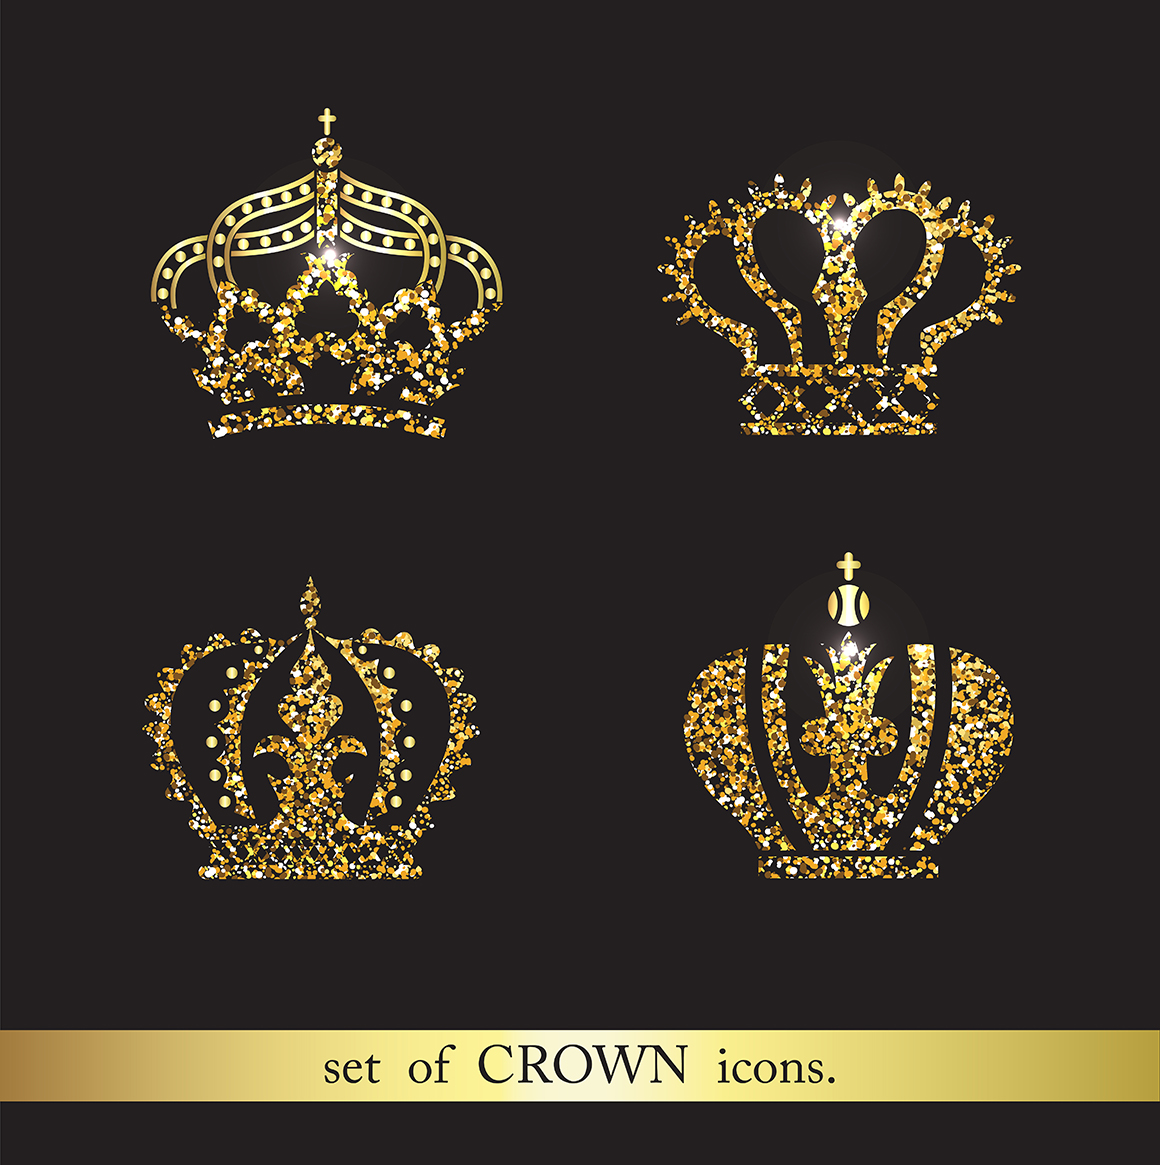 Set of gold crown icons.  Flat crown icons in black.